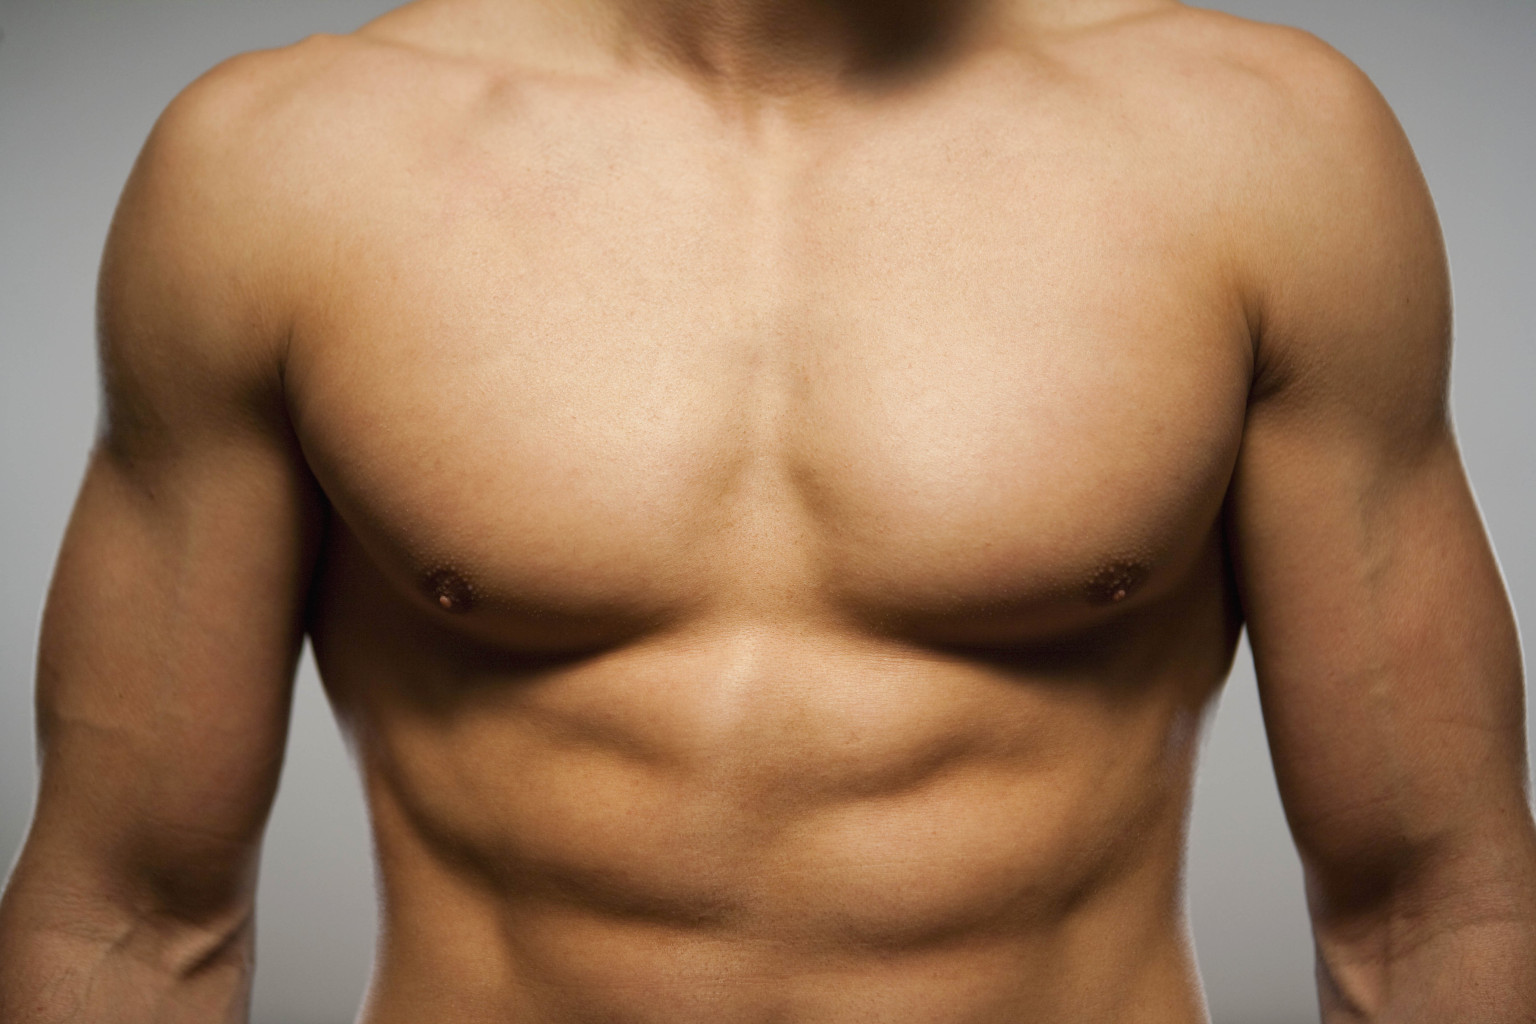 men's smooth chest